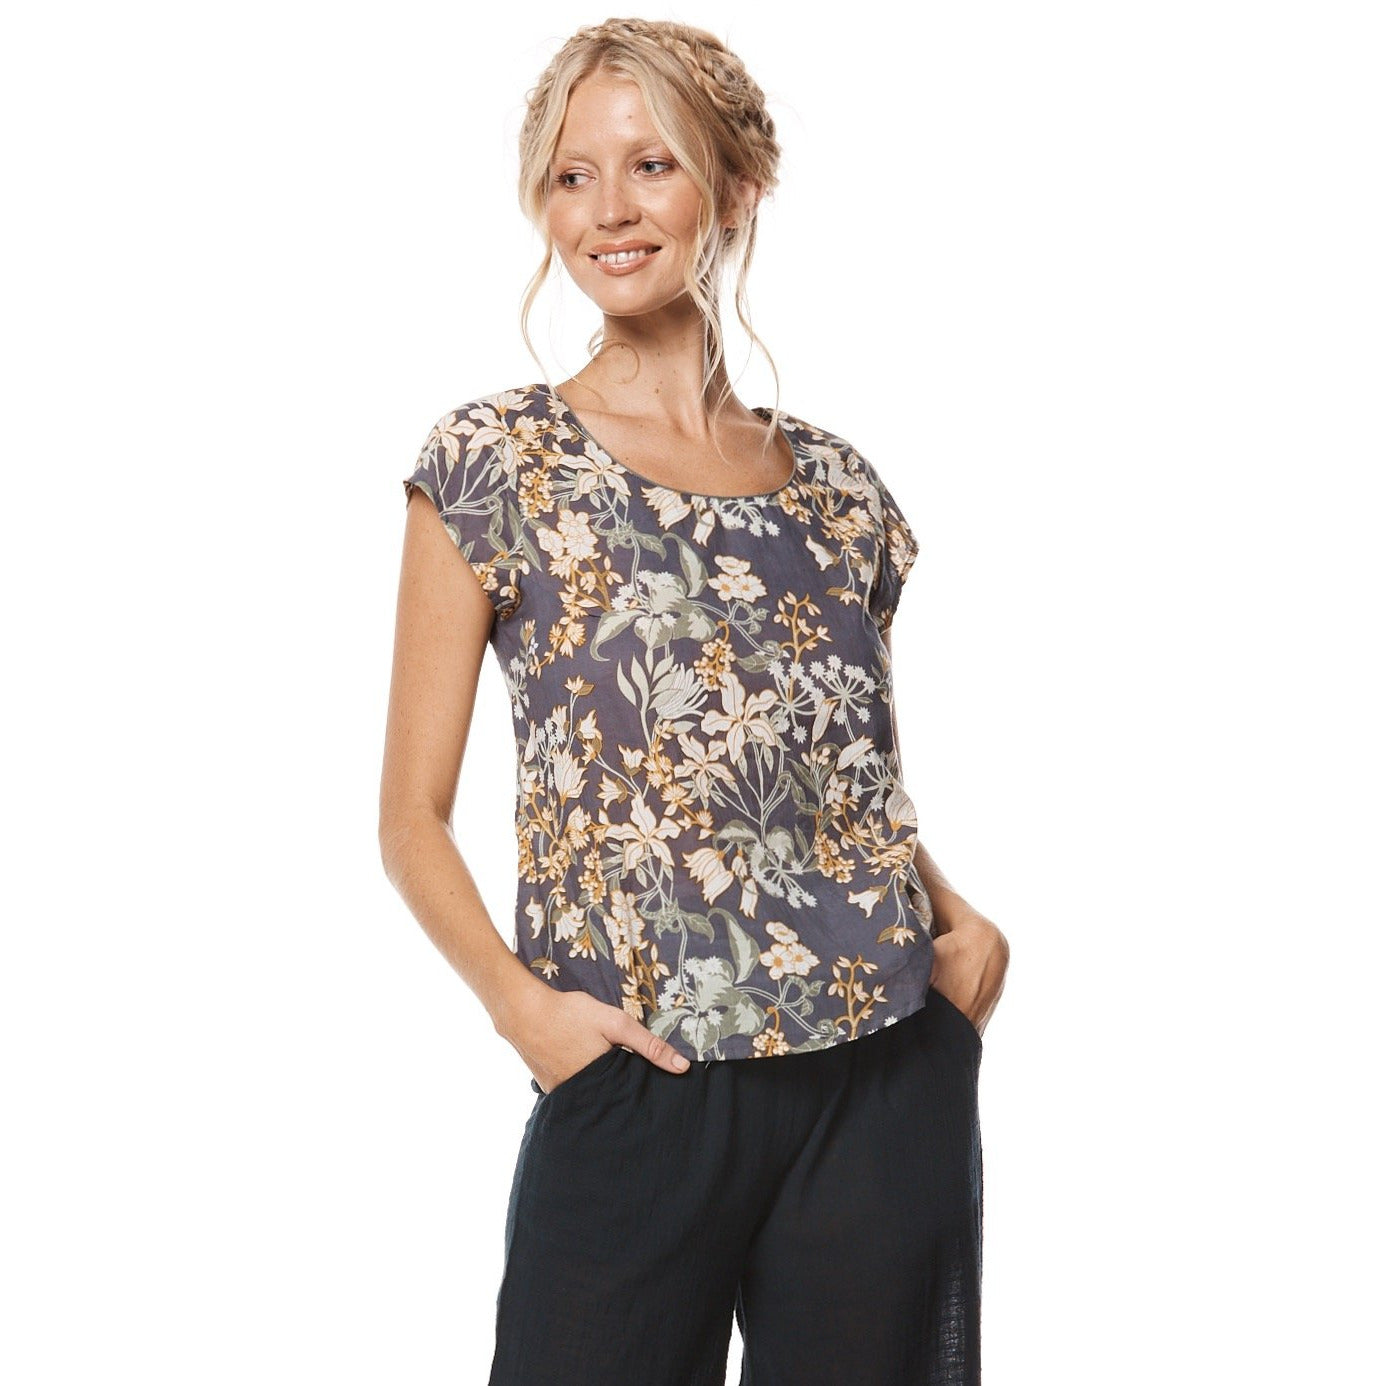 MahaShe Remi Top in Zinnia print.